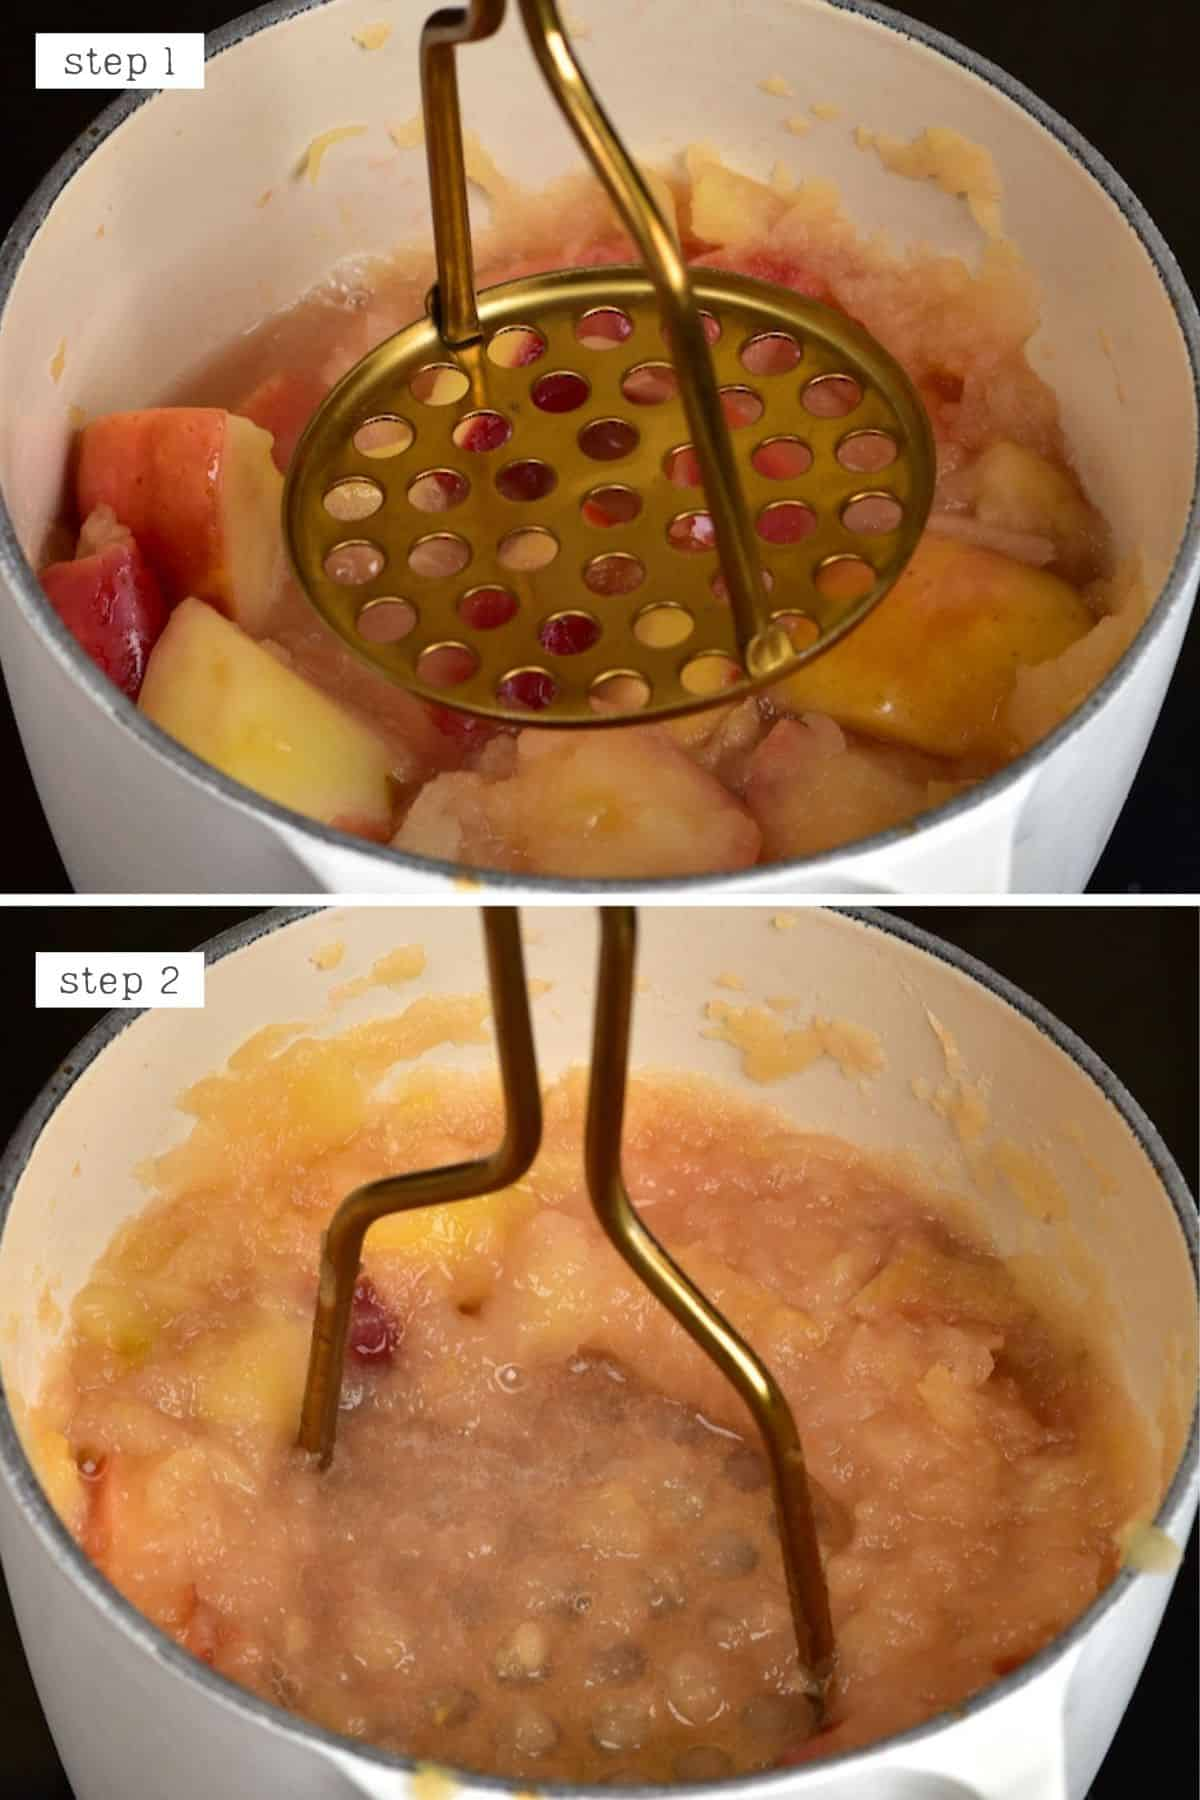 Steps for mashing apples